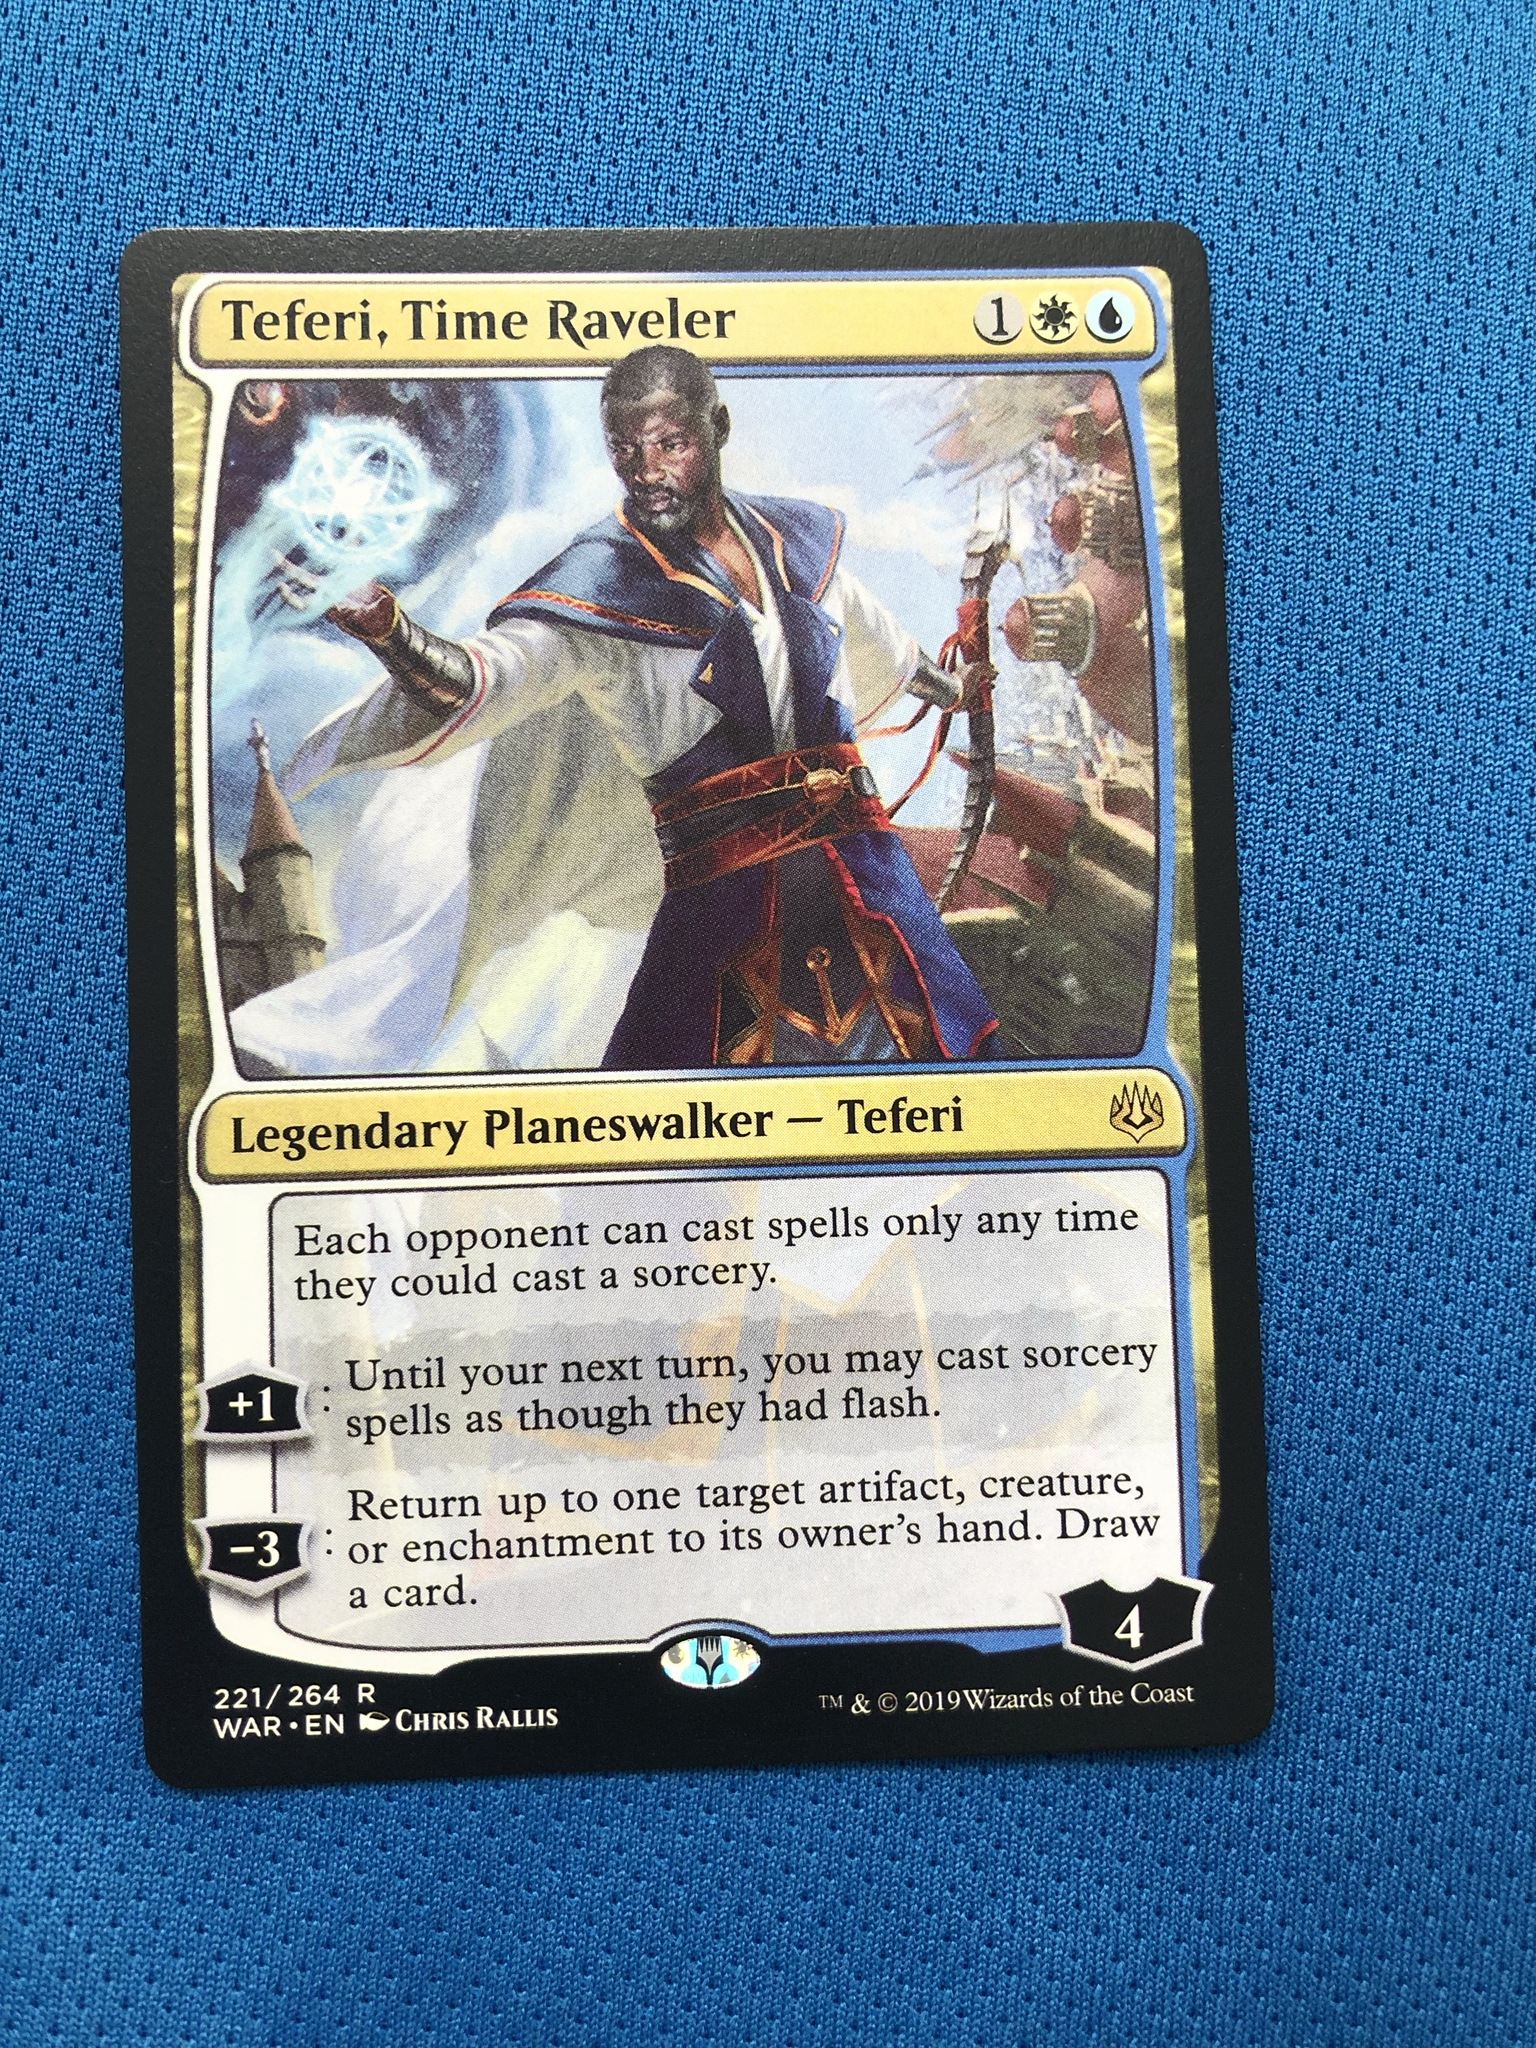 Teferi, Time Raveler WAR Hologram Magician ProxyKing 8.0 VIP The Proxy Cards To Gathering Every Single Mg Card.